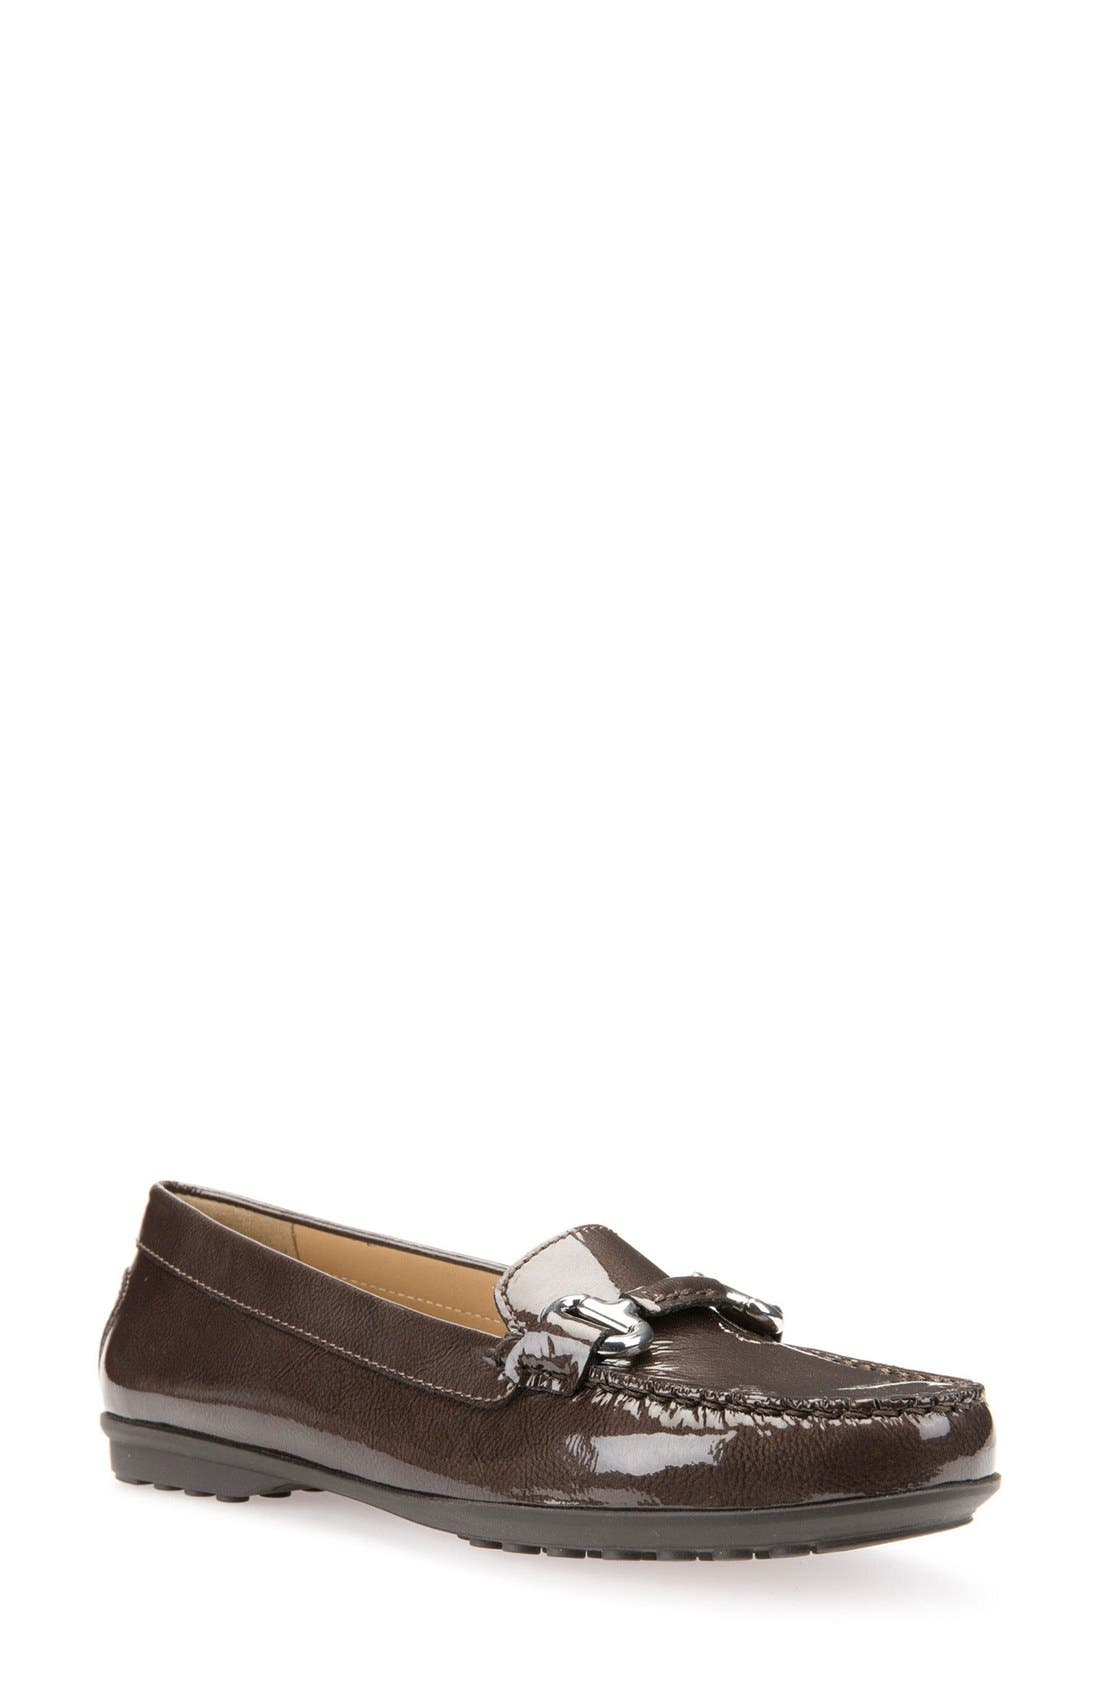 Geox Elidia Bit Water Resistant Loafer (Women)